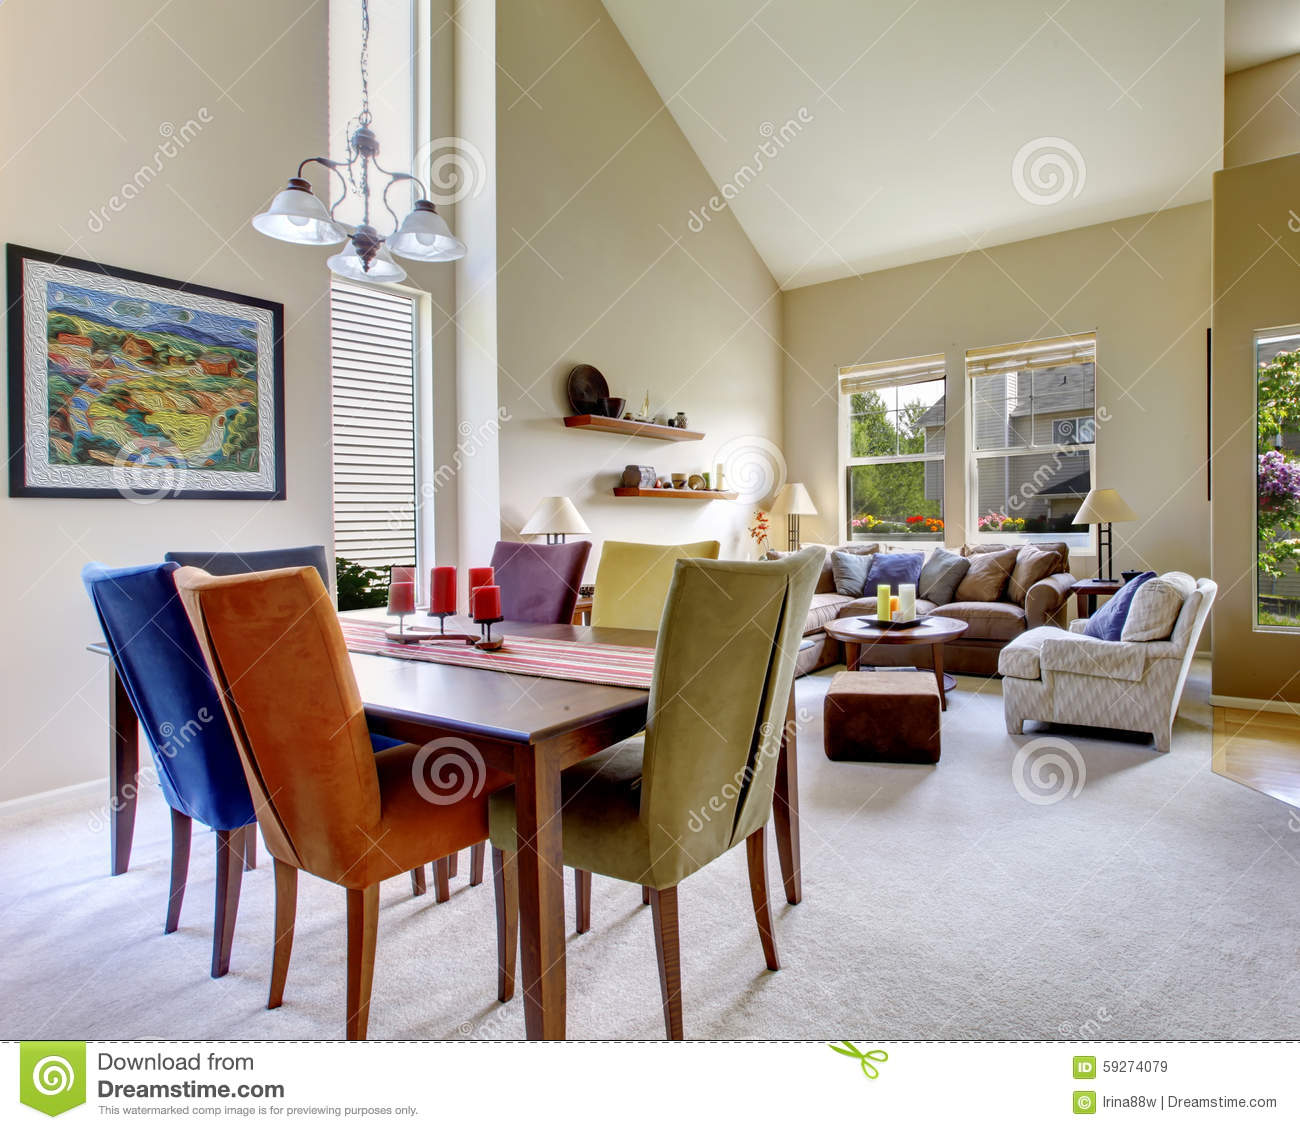 Swell Large Beige Bright Living Room With Dining Room Table With Download Free Architecture Designs Embacsunscenecom